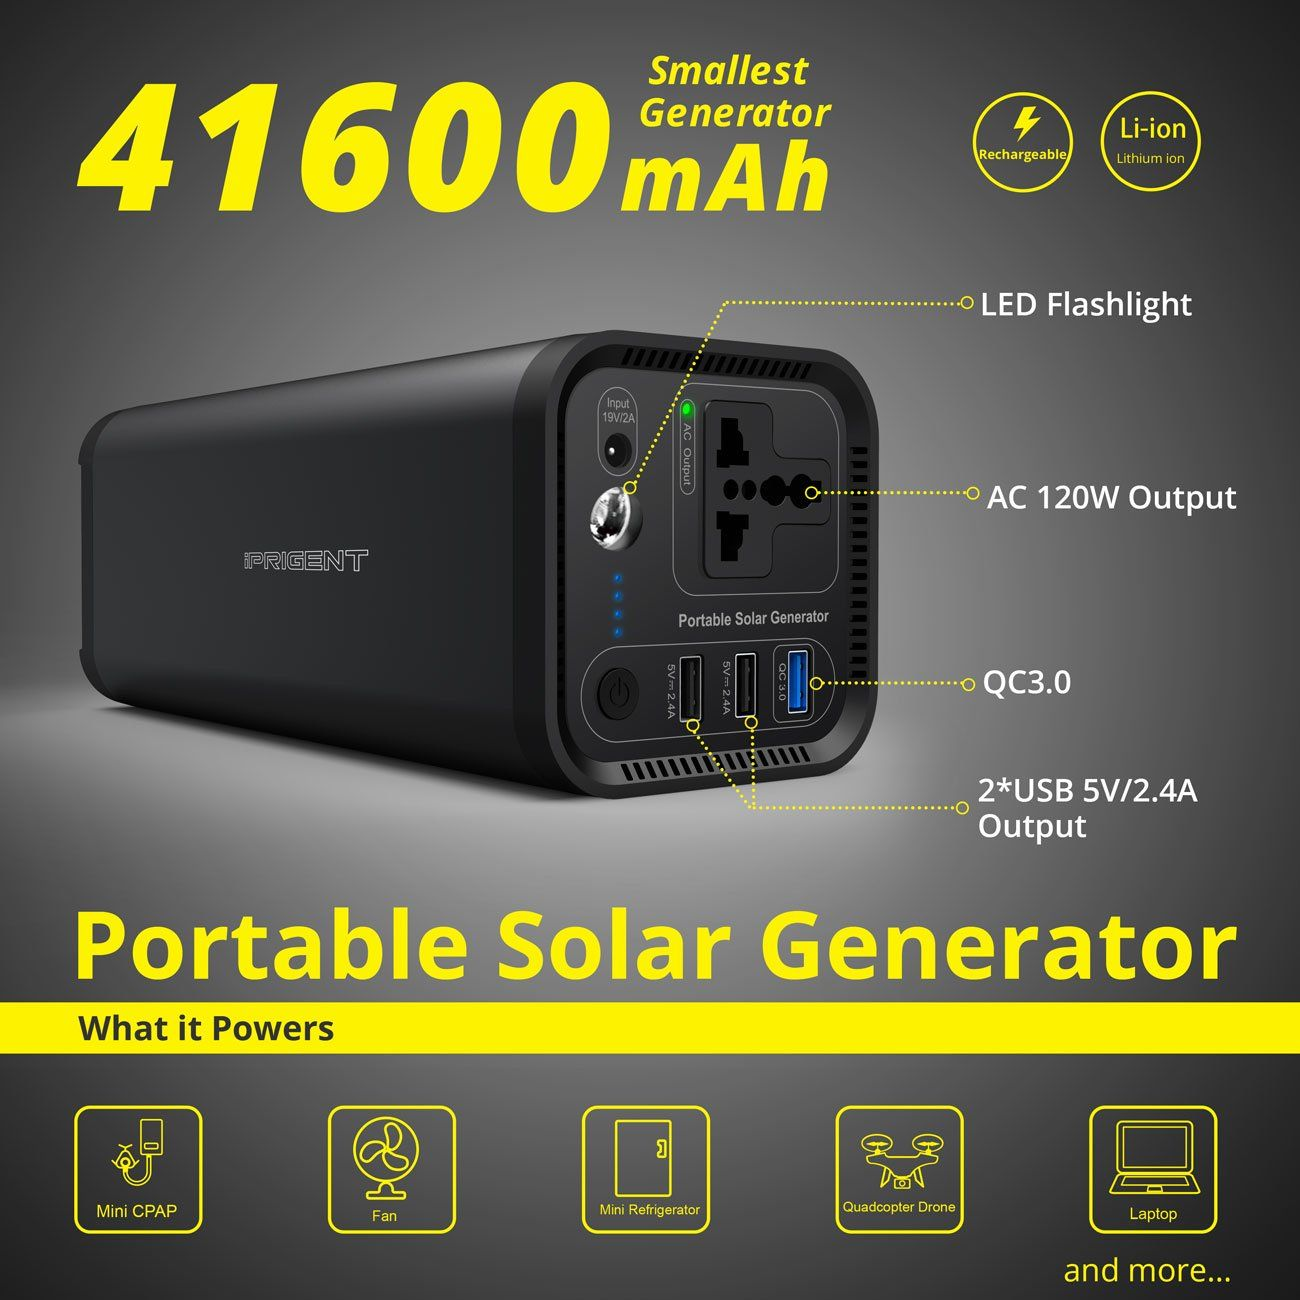 Portable Solar Generator Power Source 41600mah 154wh Camping Cpap Battery Pack With 110v Silent Ac Outlet Inver Portable Solar Generator Solar Generator Solar